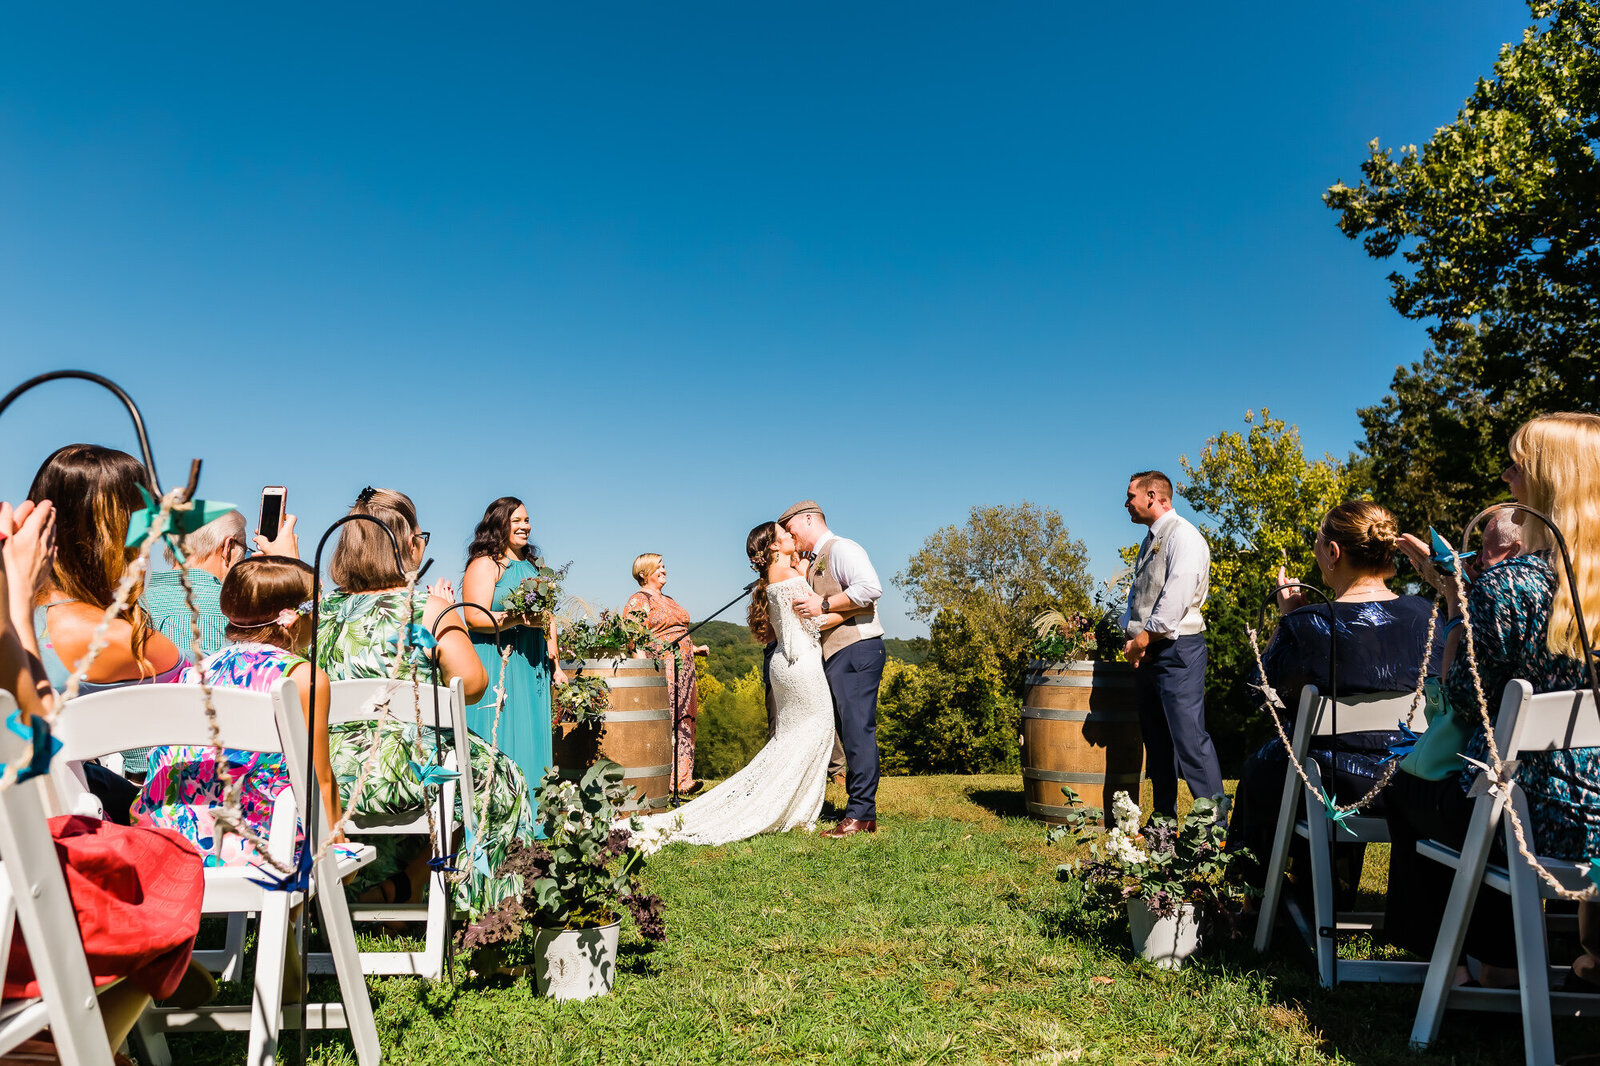 Bride and groom's first kiss at their wedding ceremony at Chaumette Winery neat St. Louis